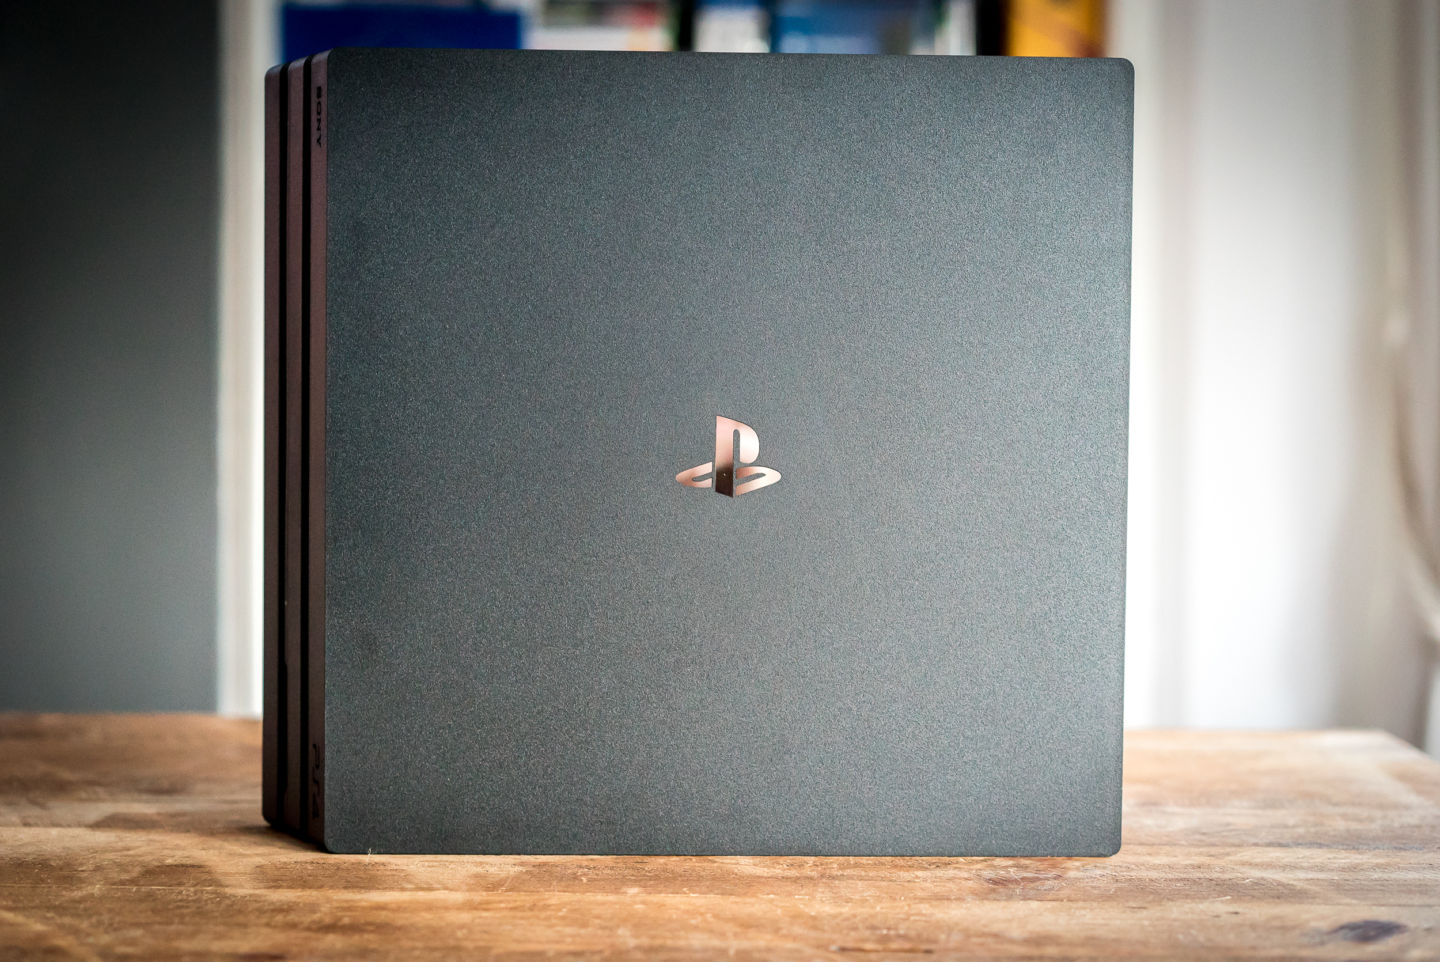 If you have a 4K TV, today's PS4 Pro discount might be of interest.